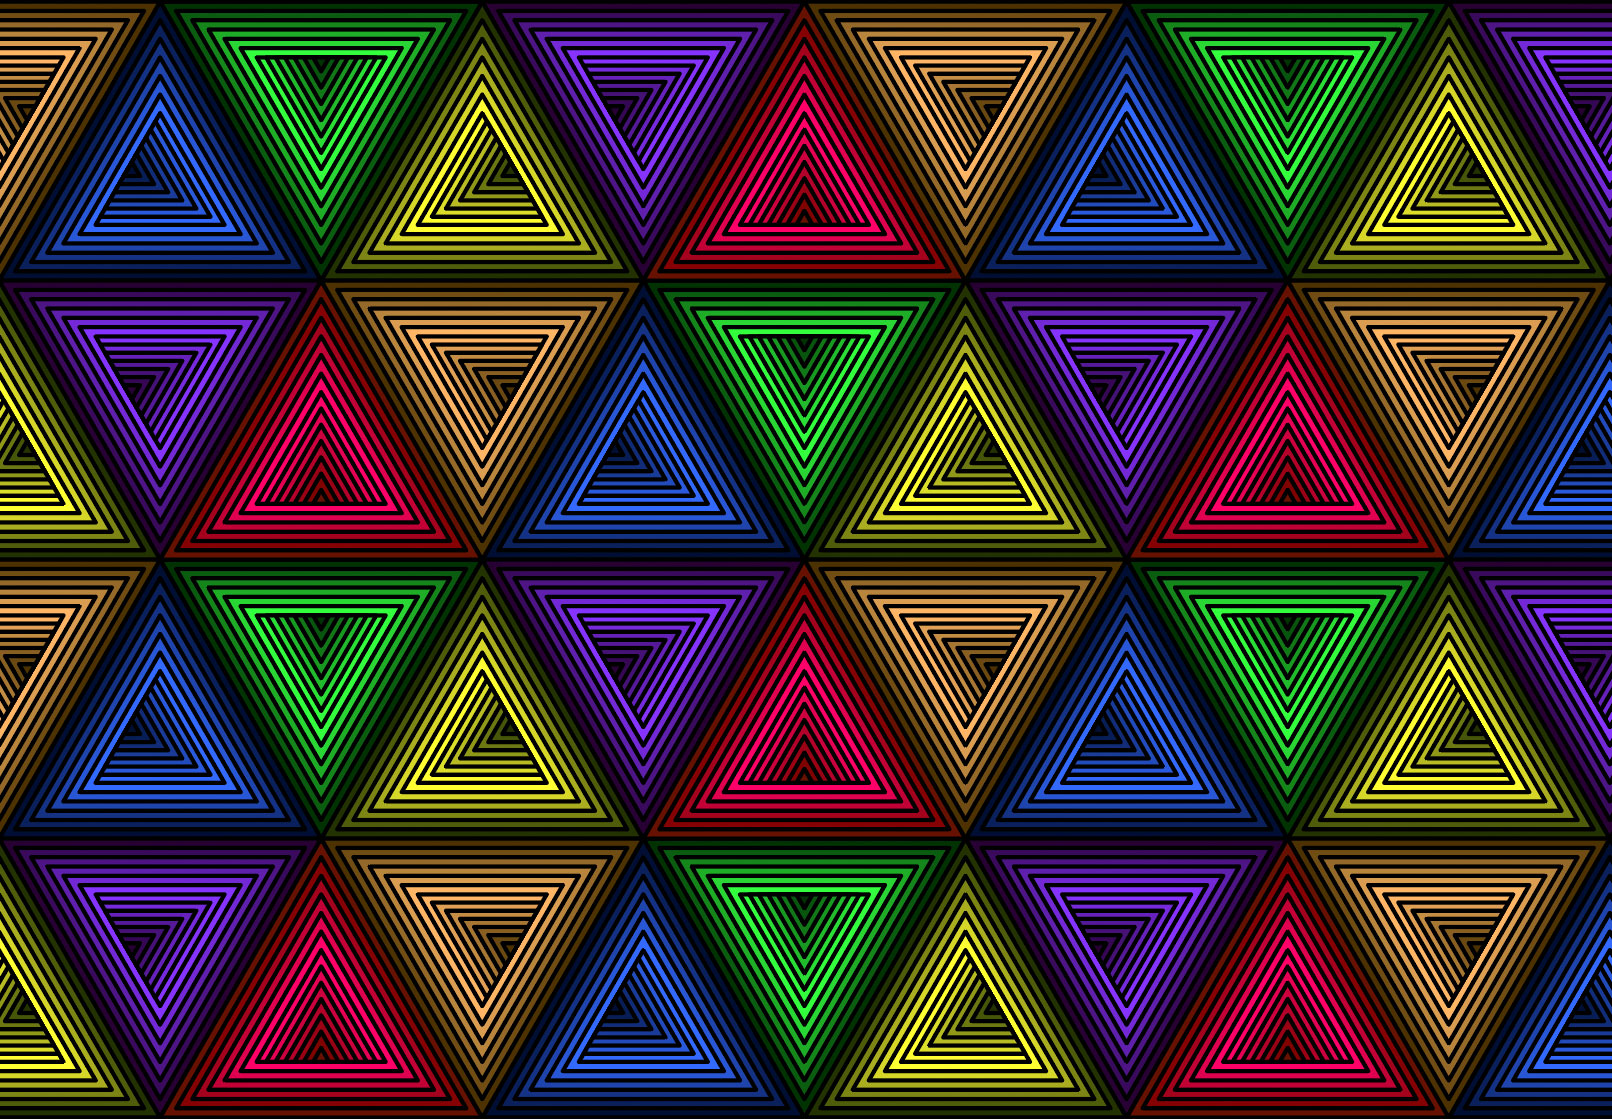 Colors in the triangluar pattern have changed